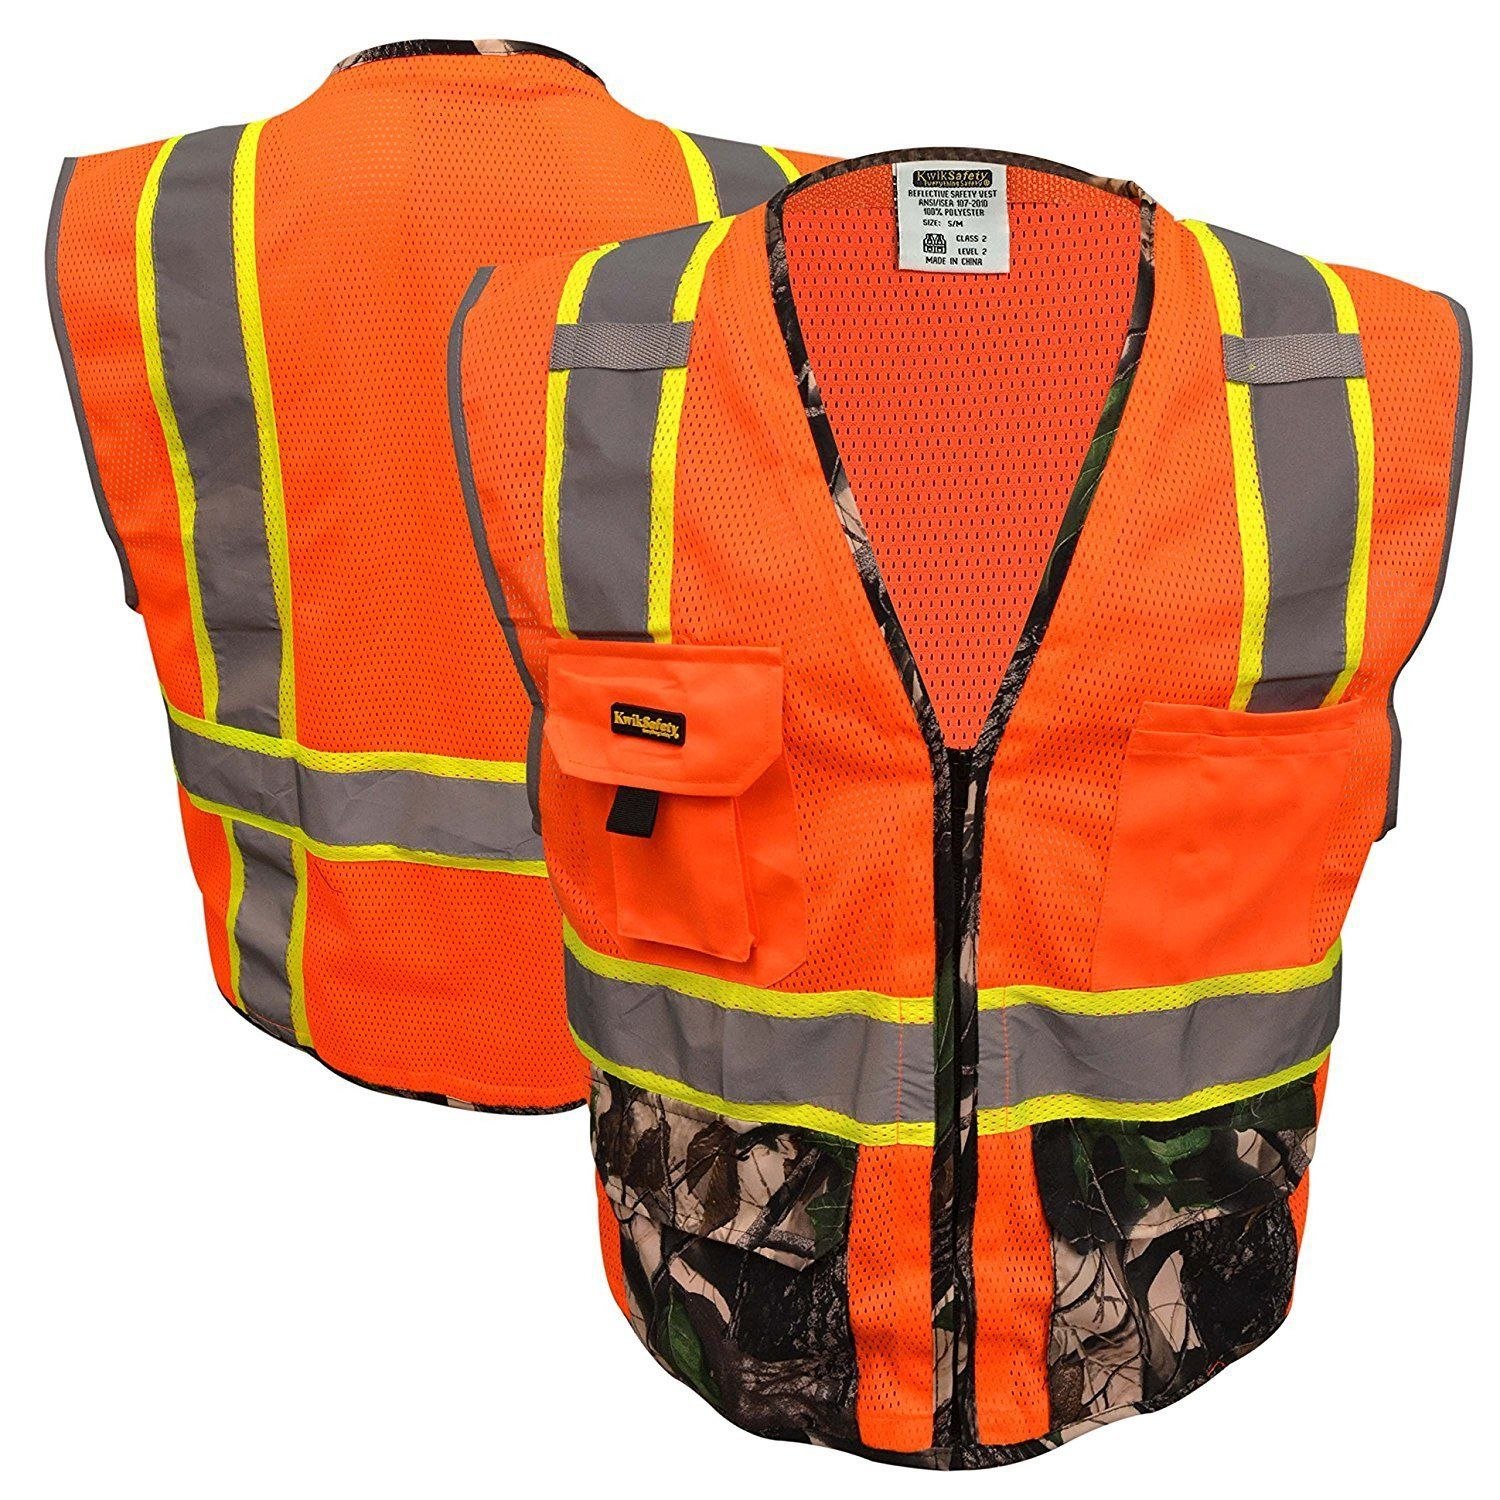 Class 2 camouflage deluxe safety vest by kwiksafety